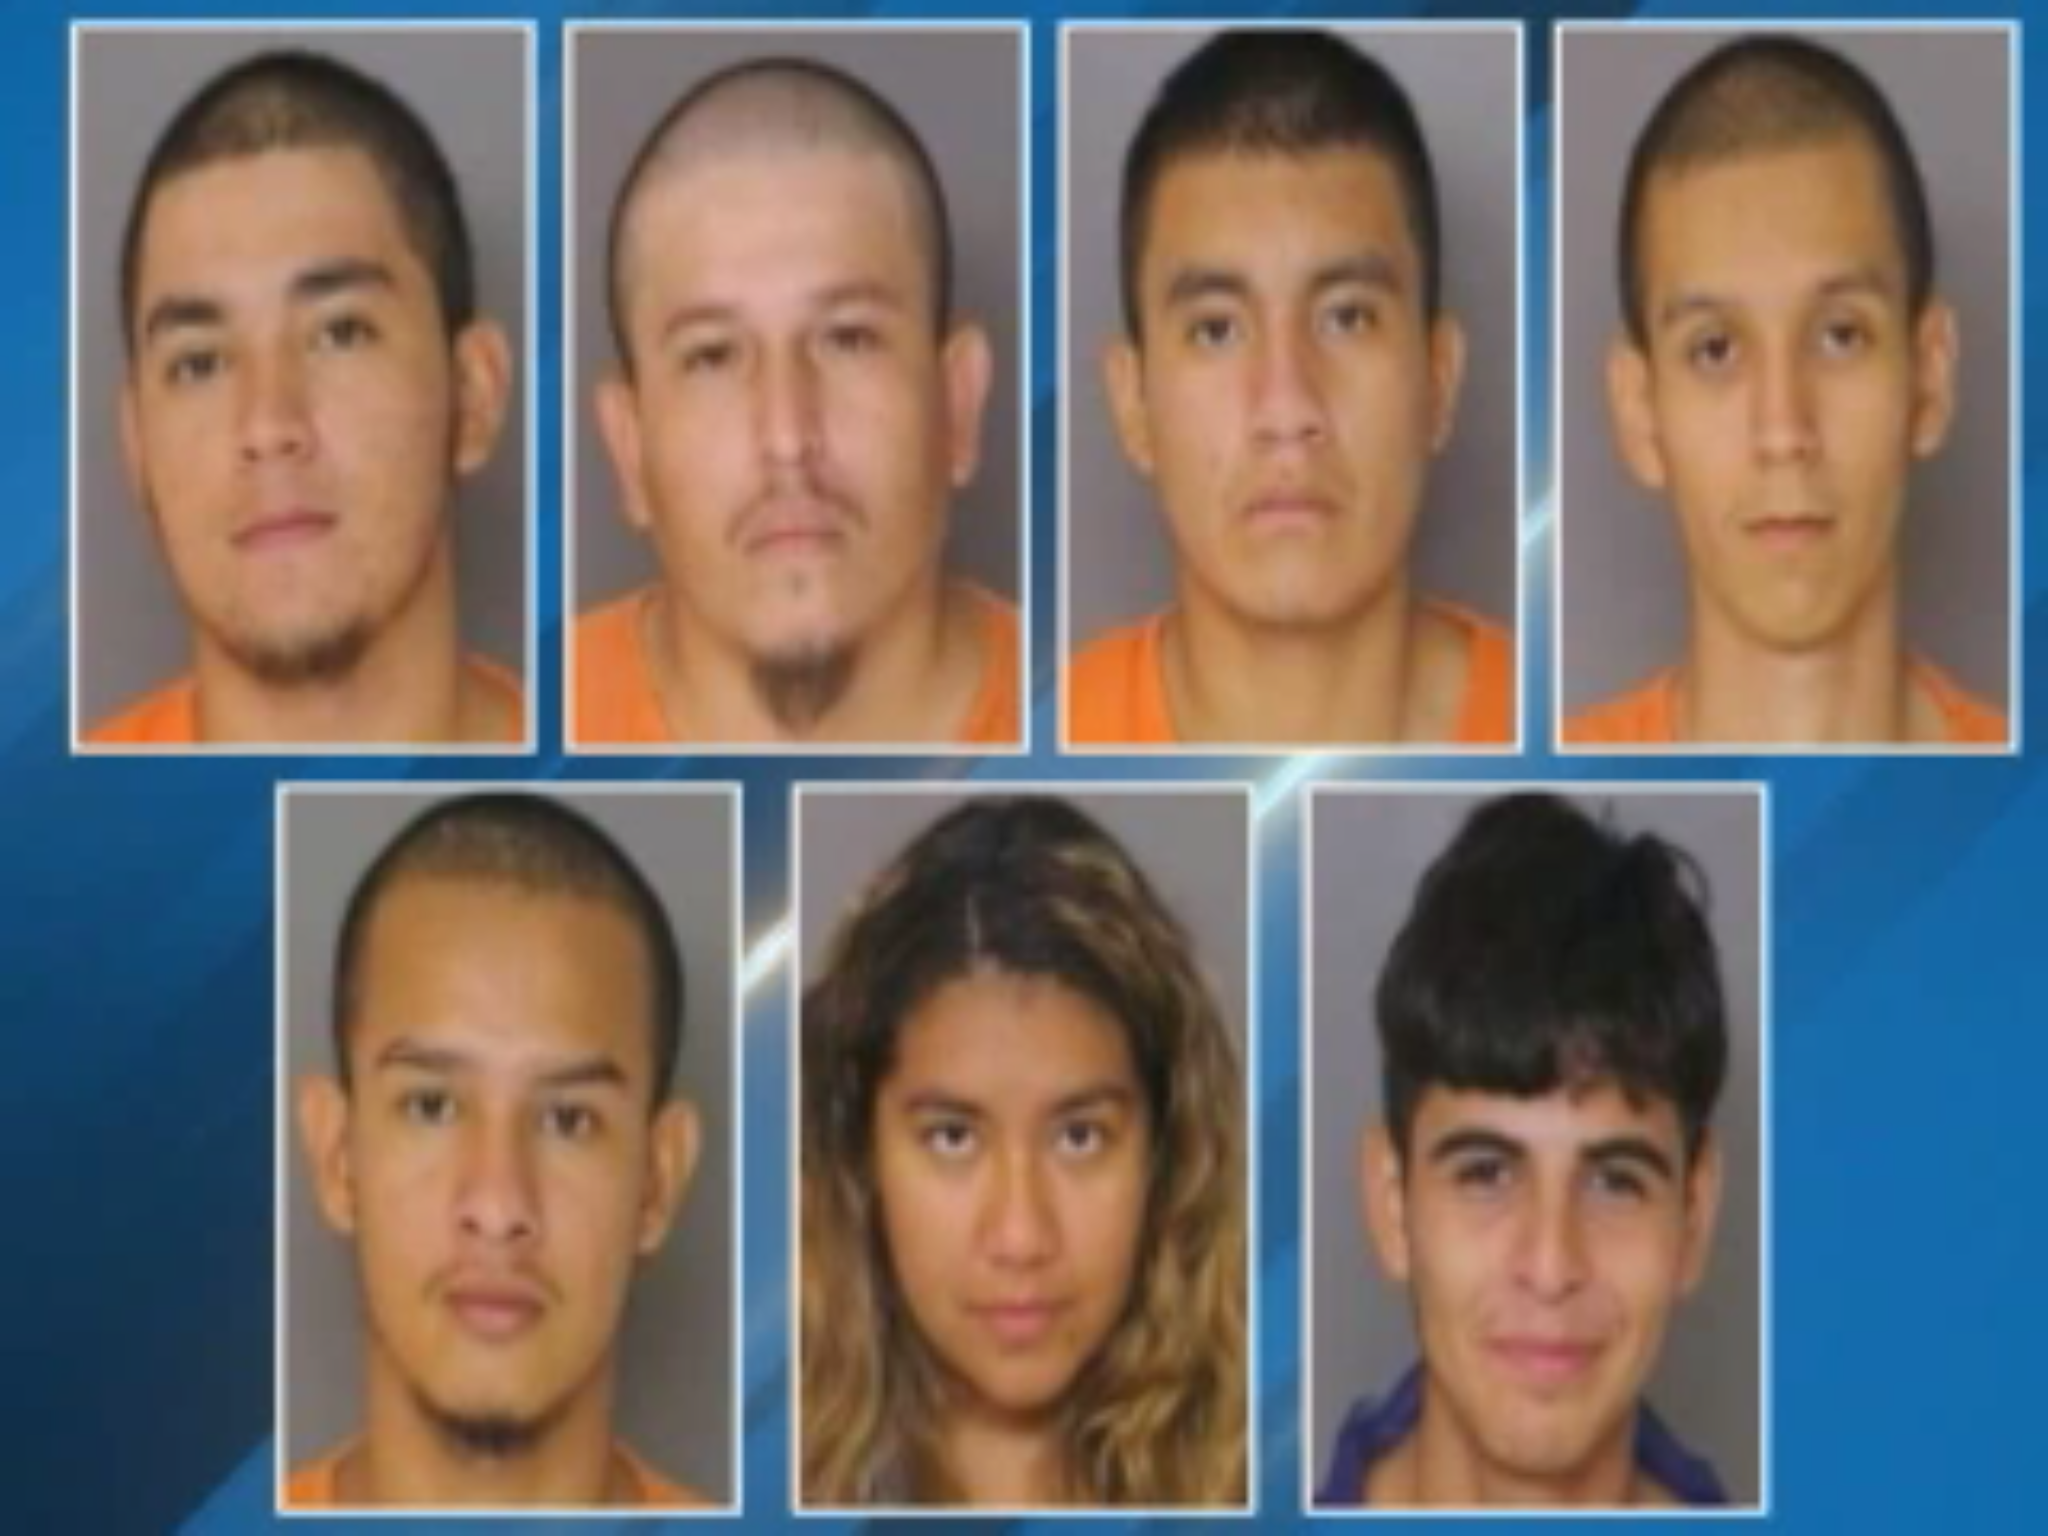 Seven suspects charged in the gang-related killing of a Maryland man. Fox 45 screenshot, Sept. 4, 2019.